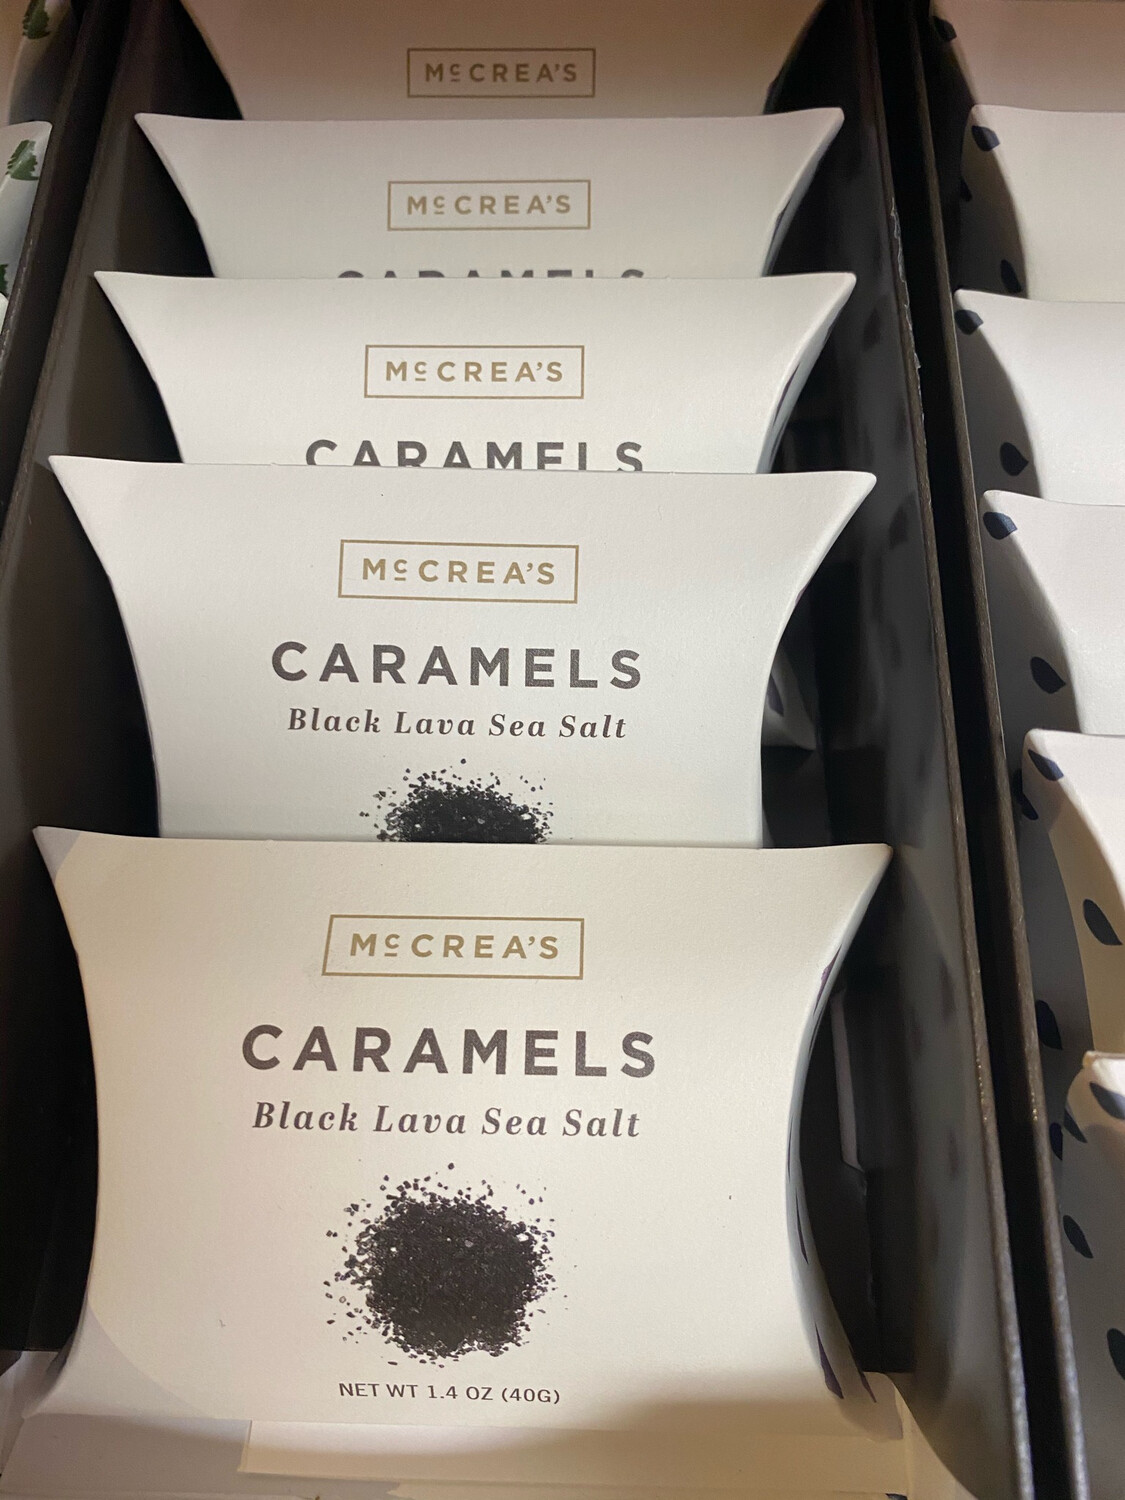 McCrea's Black Lava Sea Salt Caramel Pillow Box